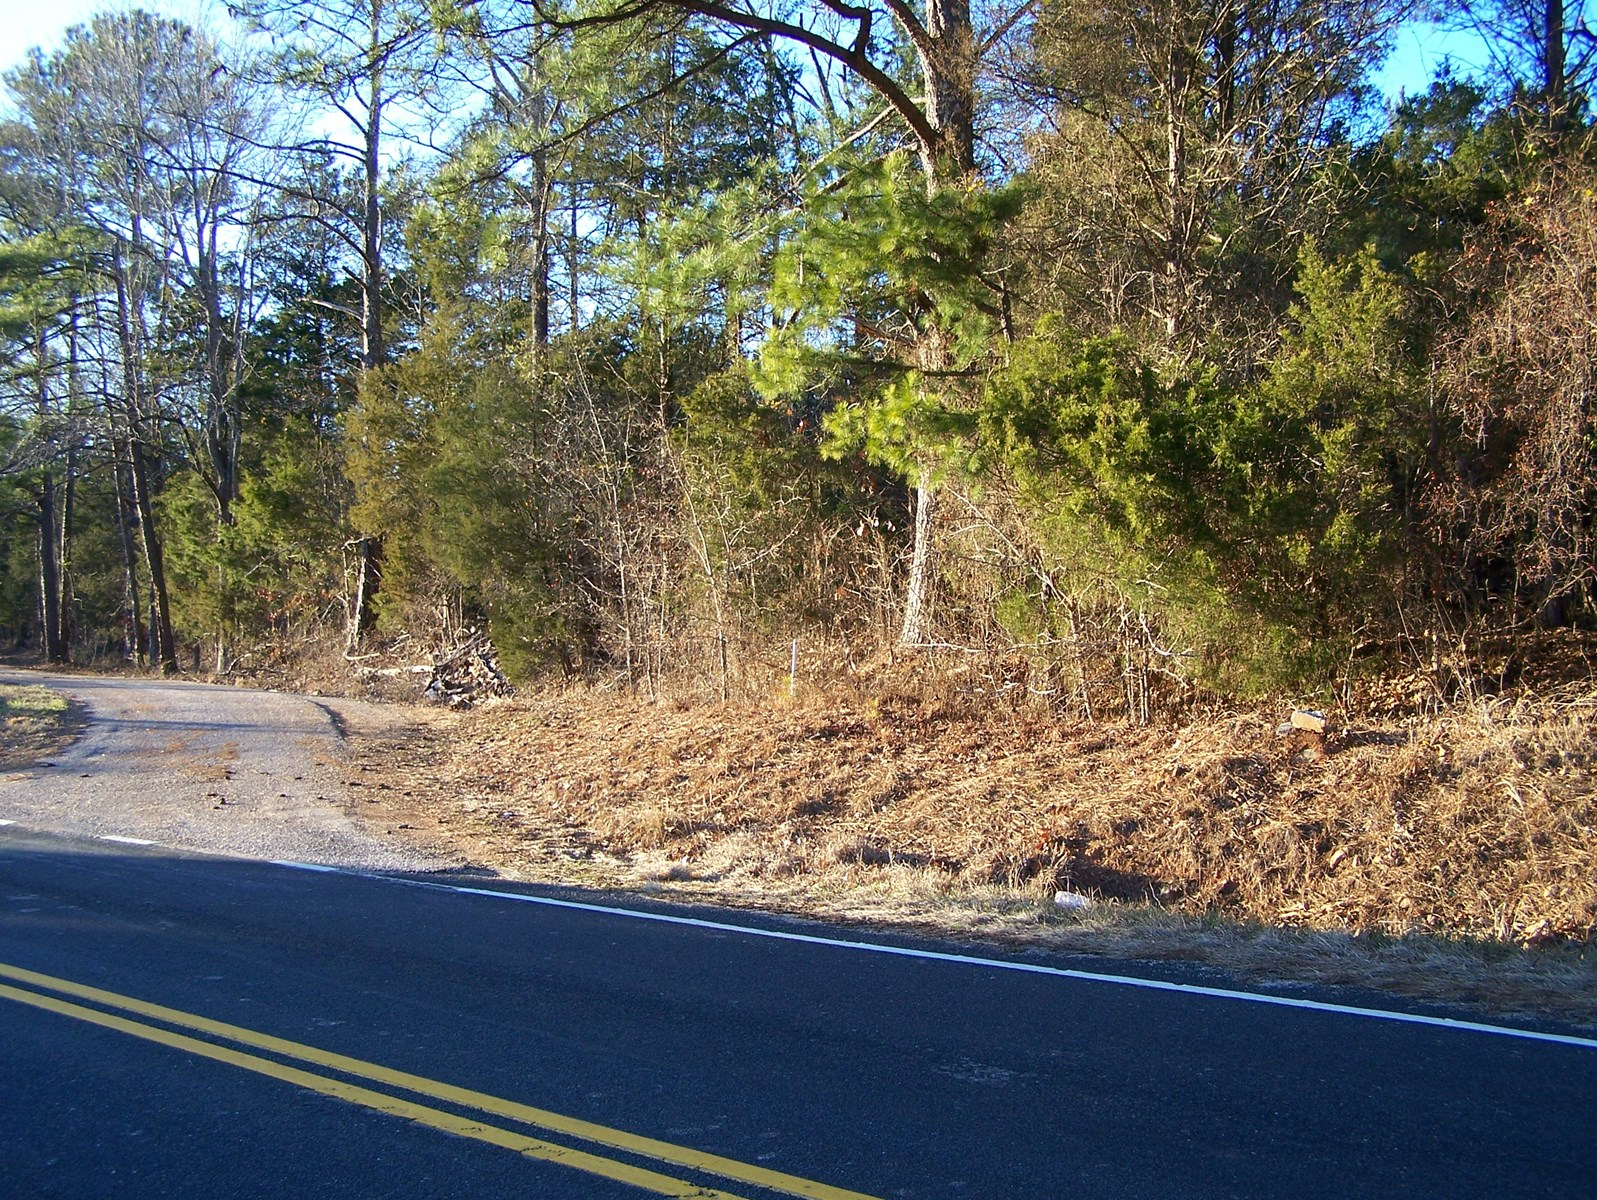 65 ROLLING ACRES FOR HUNTING OR DEVELOPMENT IN RIDGEWAY, SC